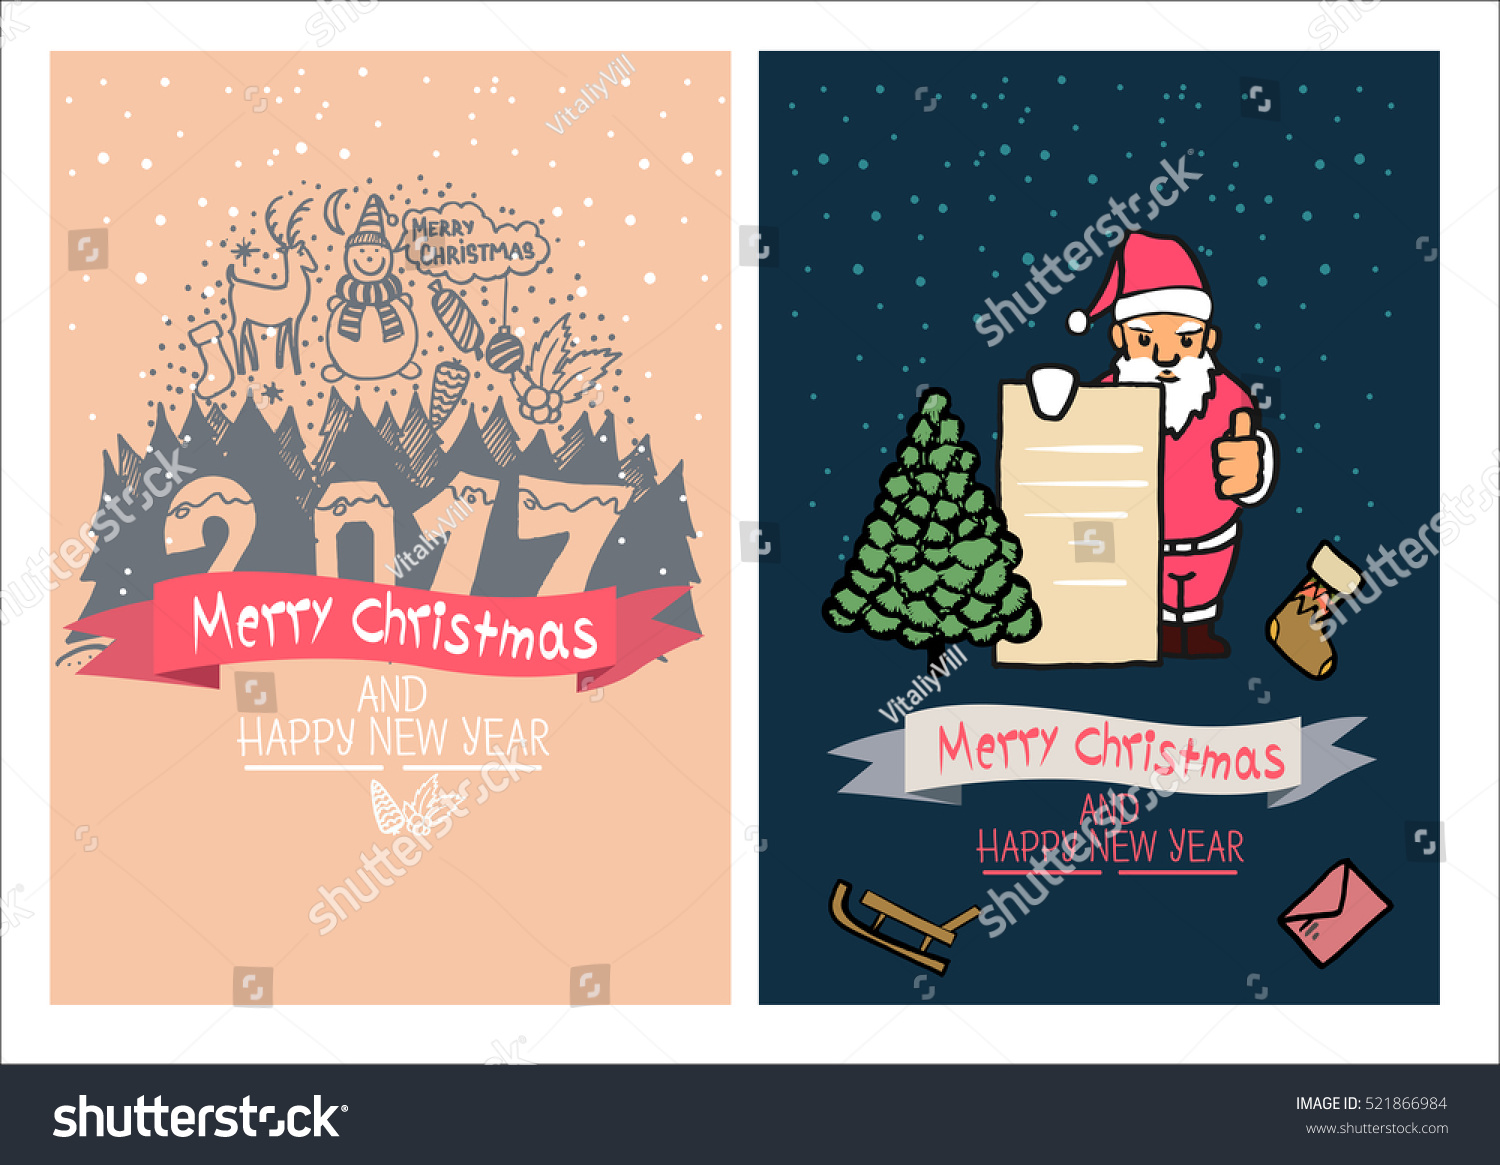 Cute christmas cards family holidays greeting stock vector royalty cute christmas cards family holidays greeting card templatestistic hand drawn design for m4hsunfo